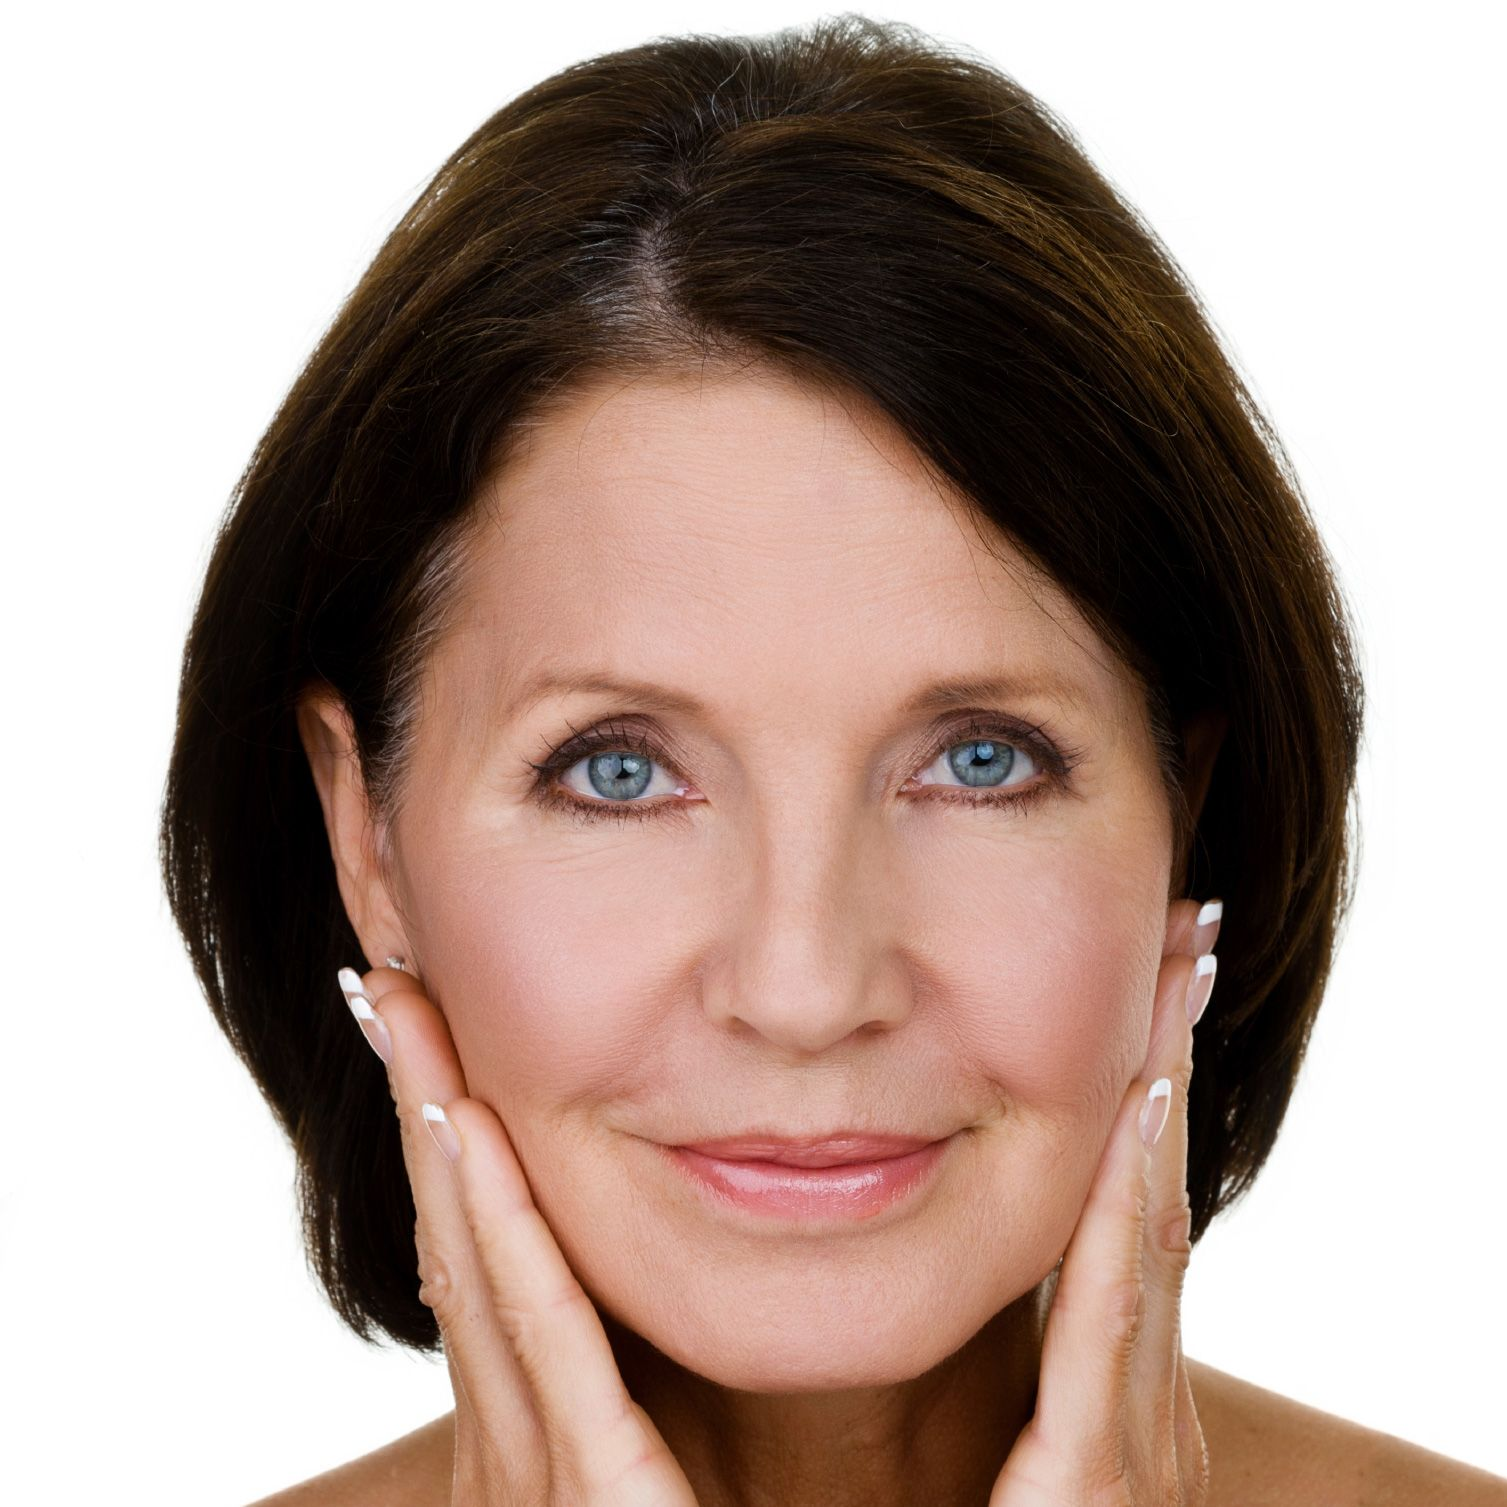 A woman pulling up the skin with her hands to reduce the appearance of her jowls